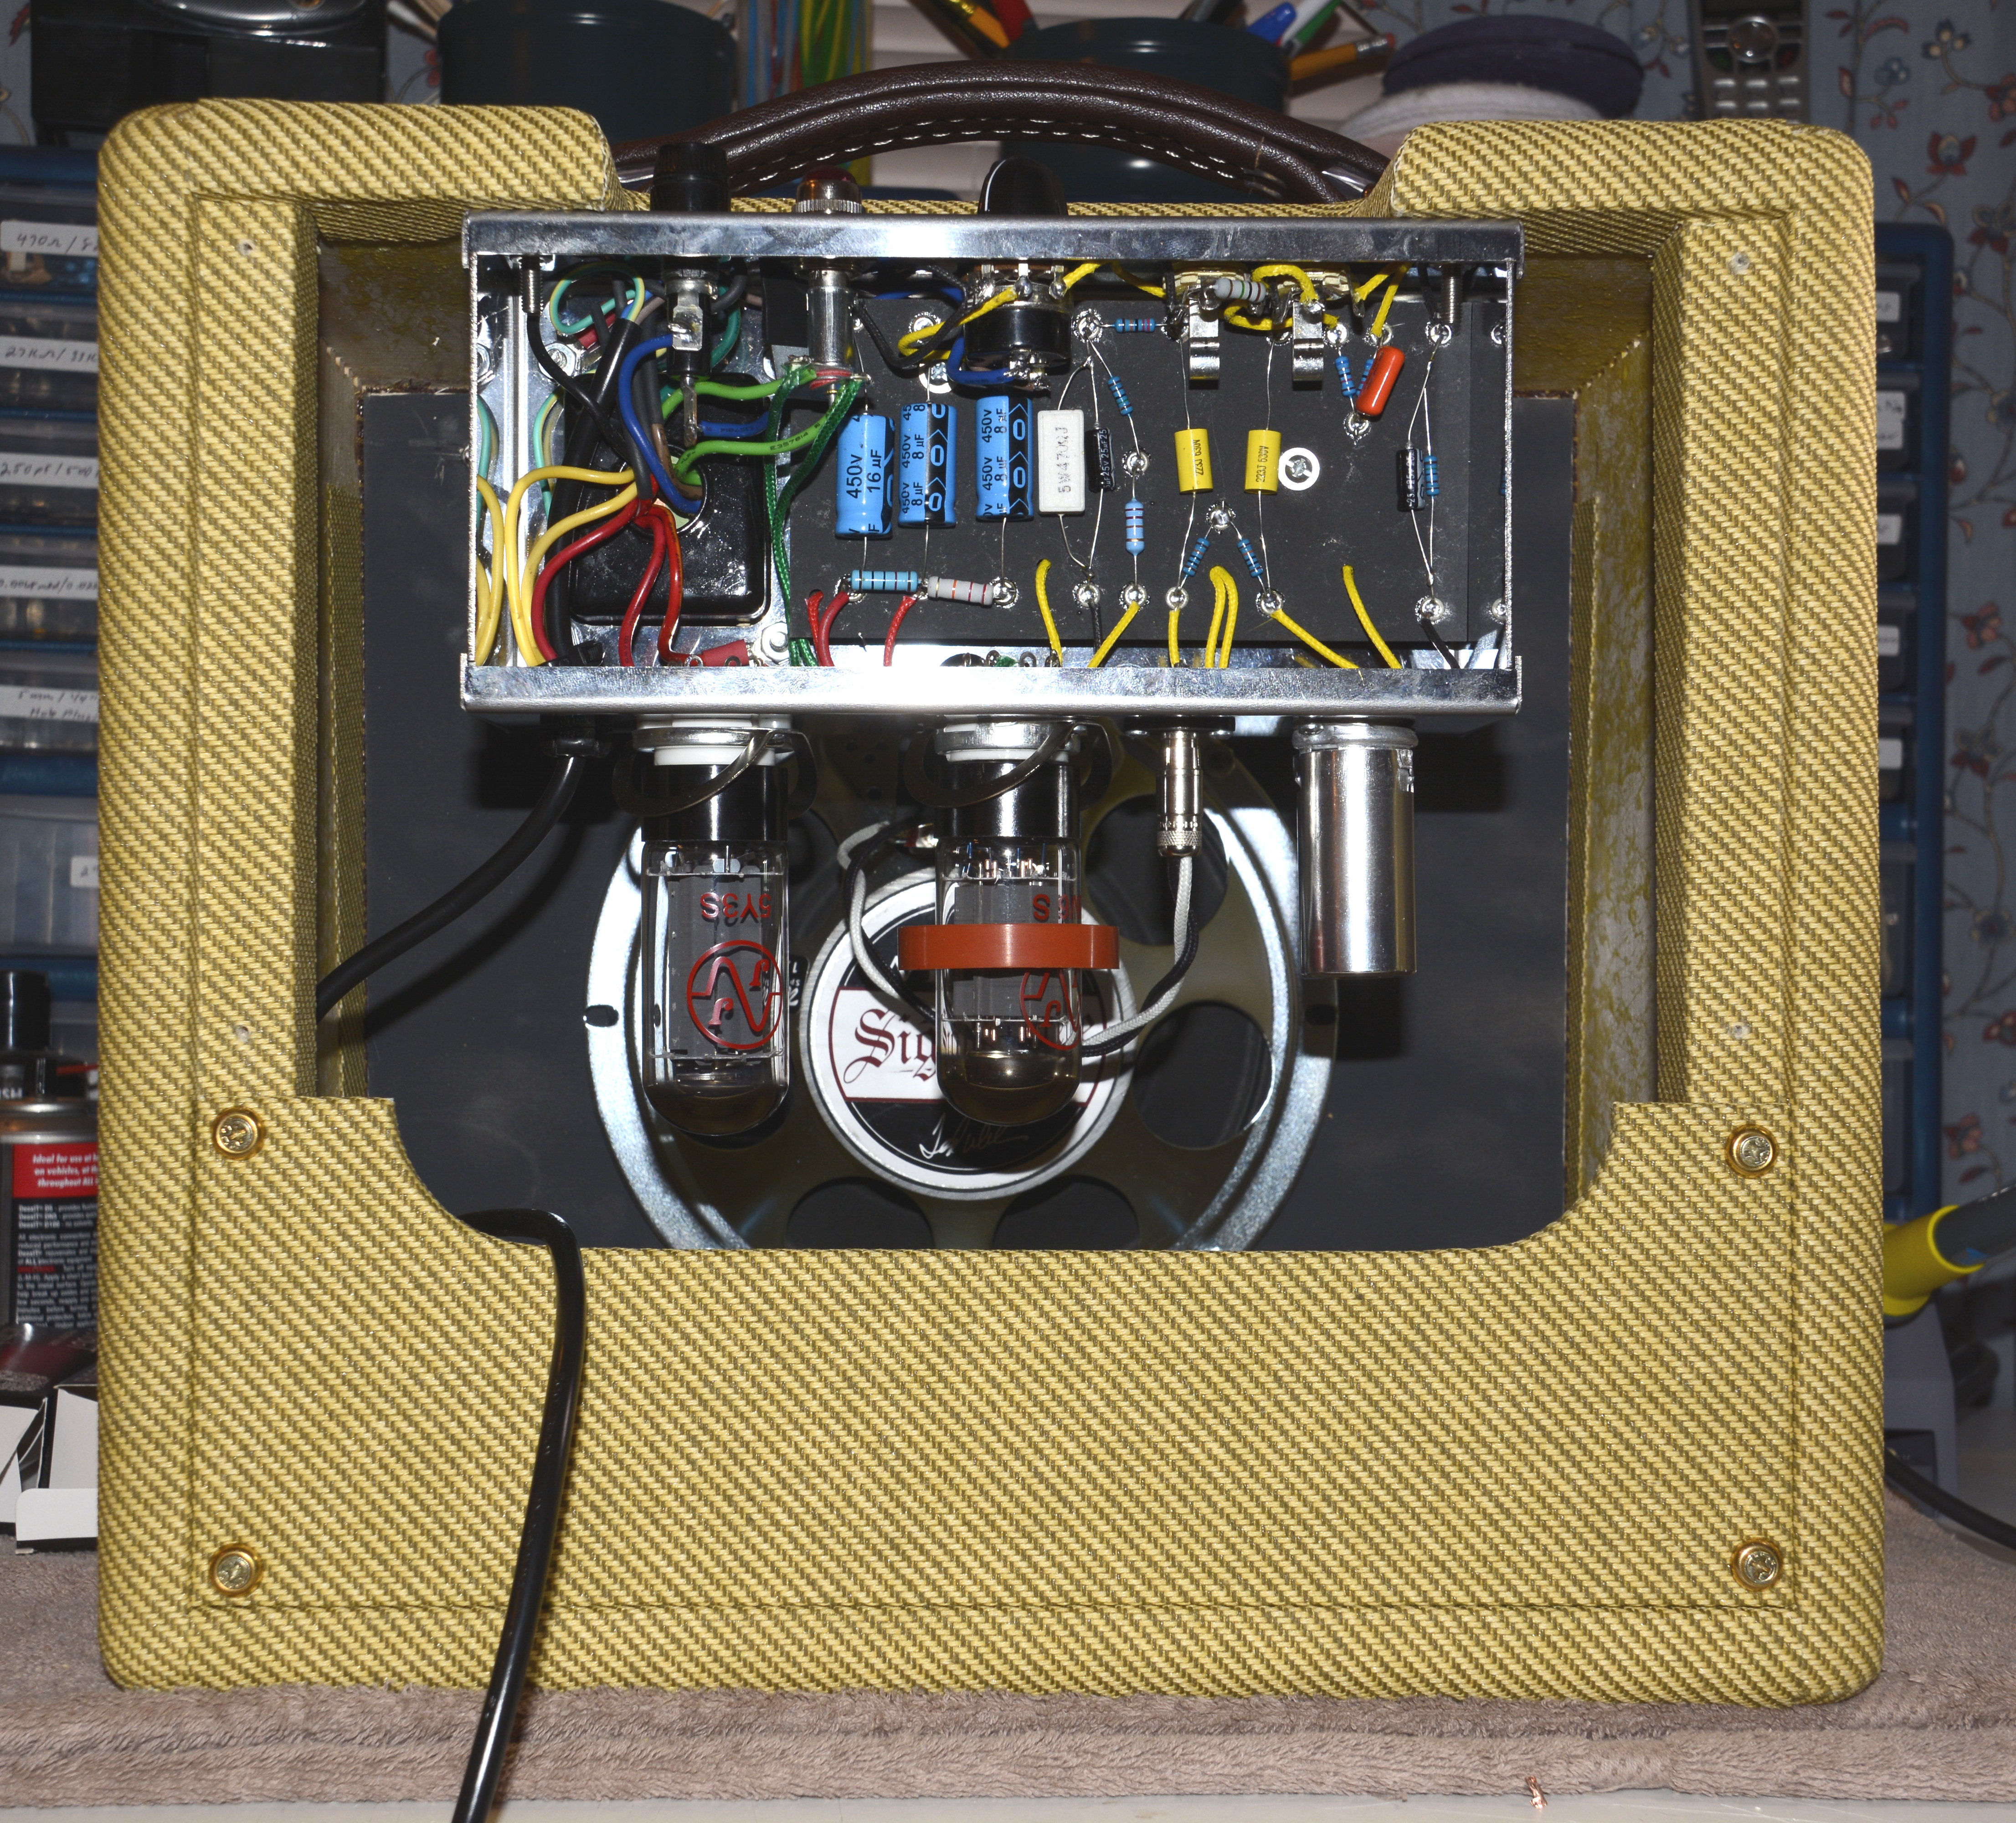 Weber Amplifier Kits Wiring Diagrams Dumble Style Build For A Beginner The Gear Page Guitar